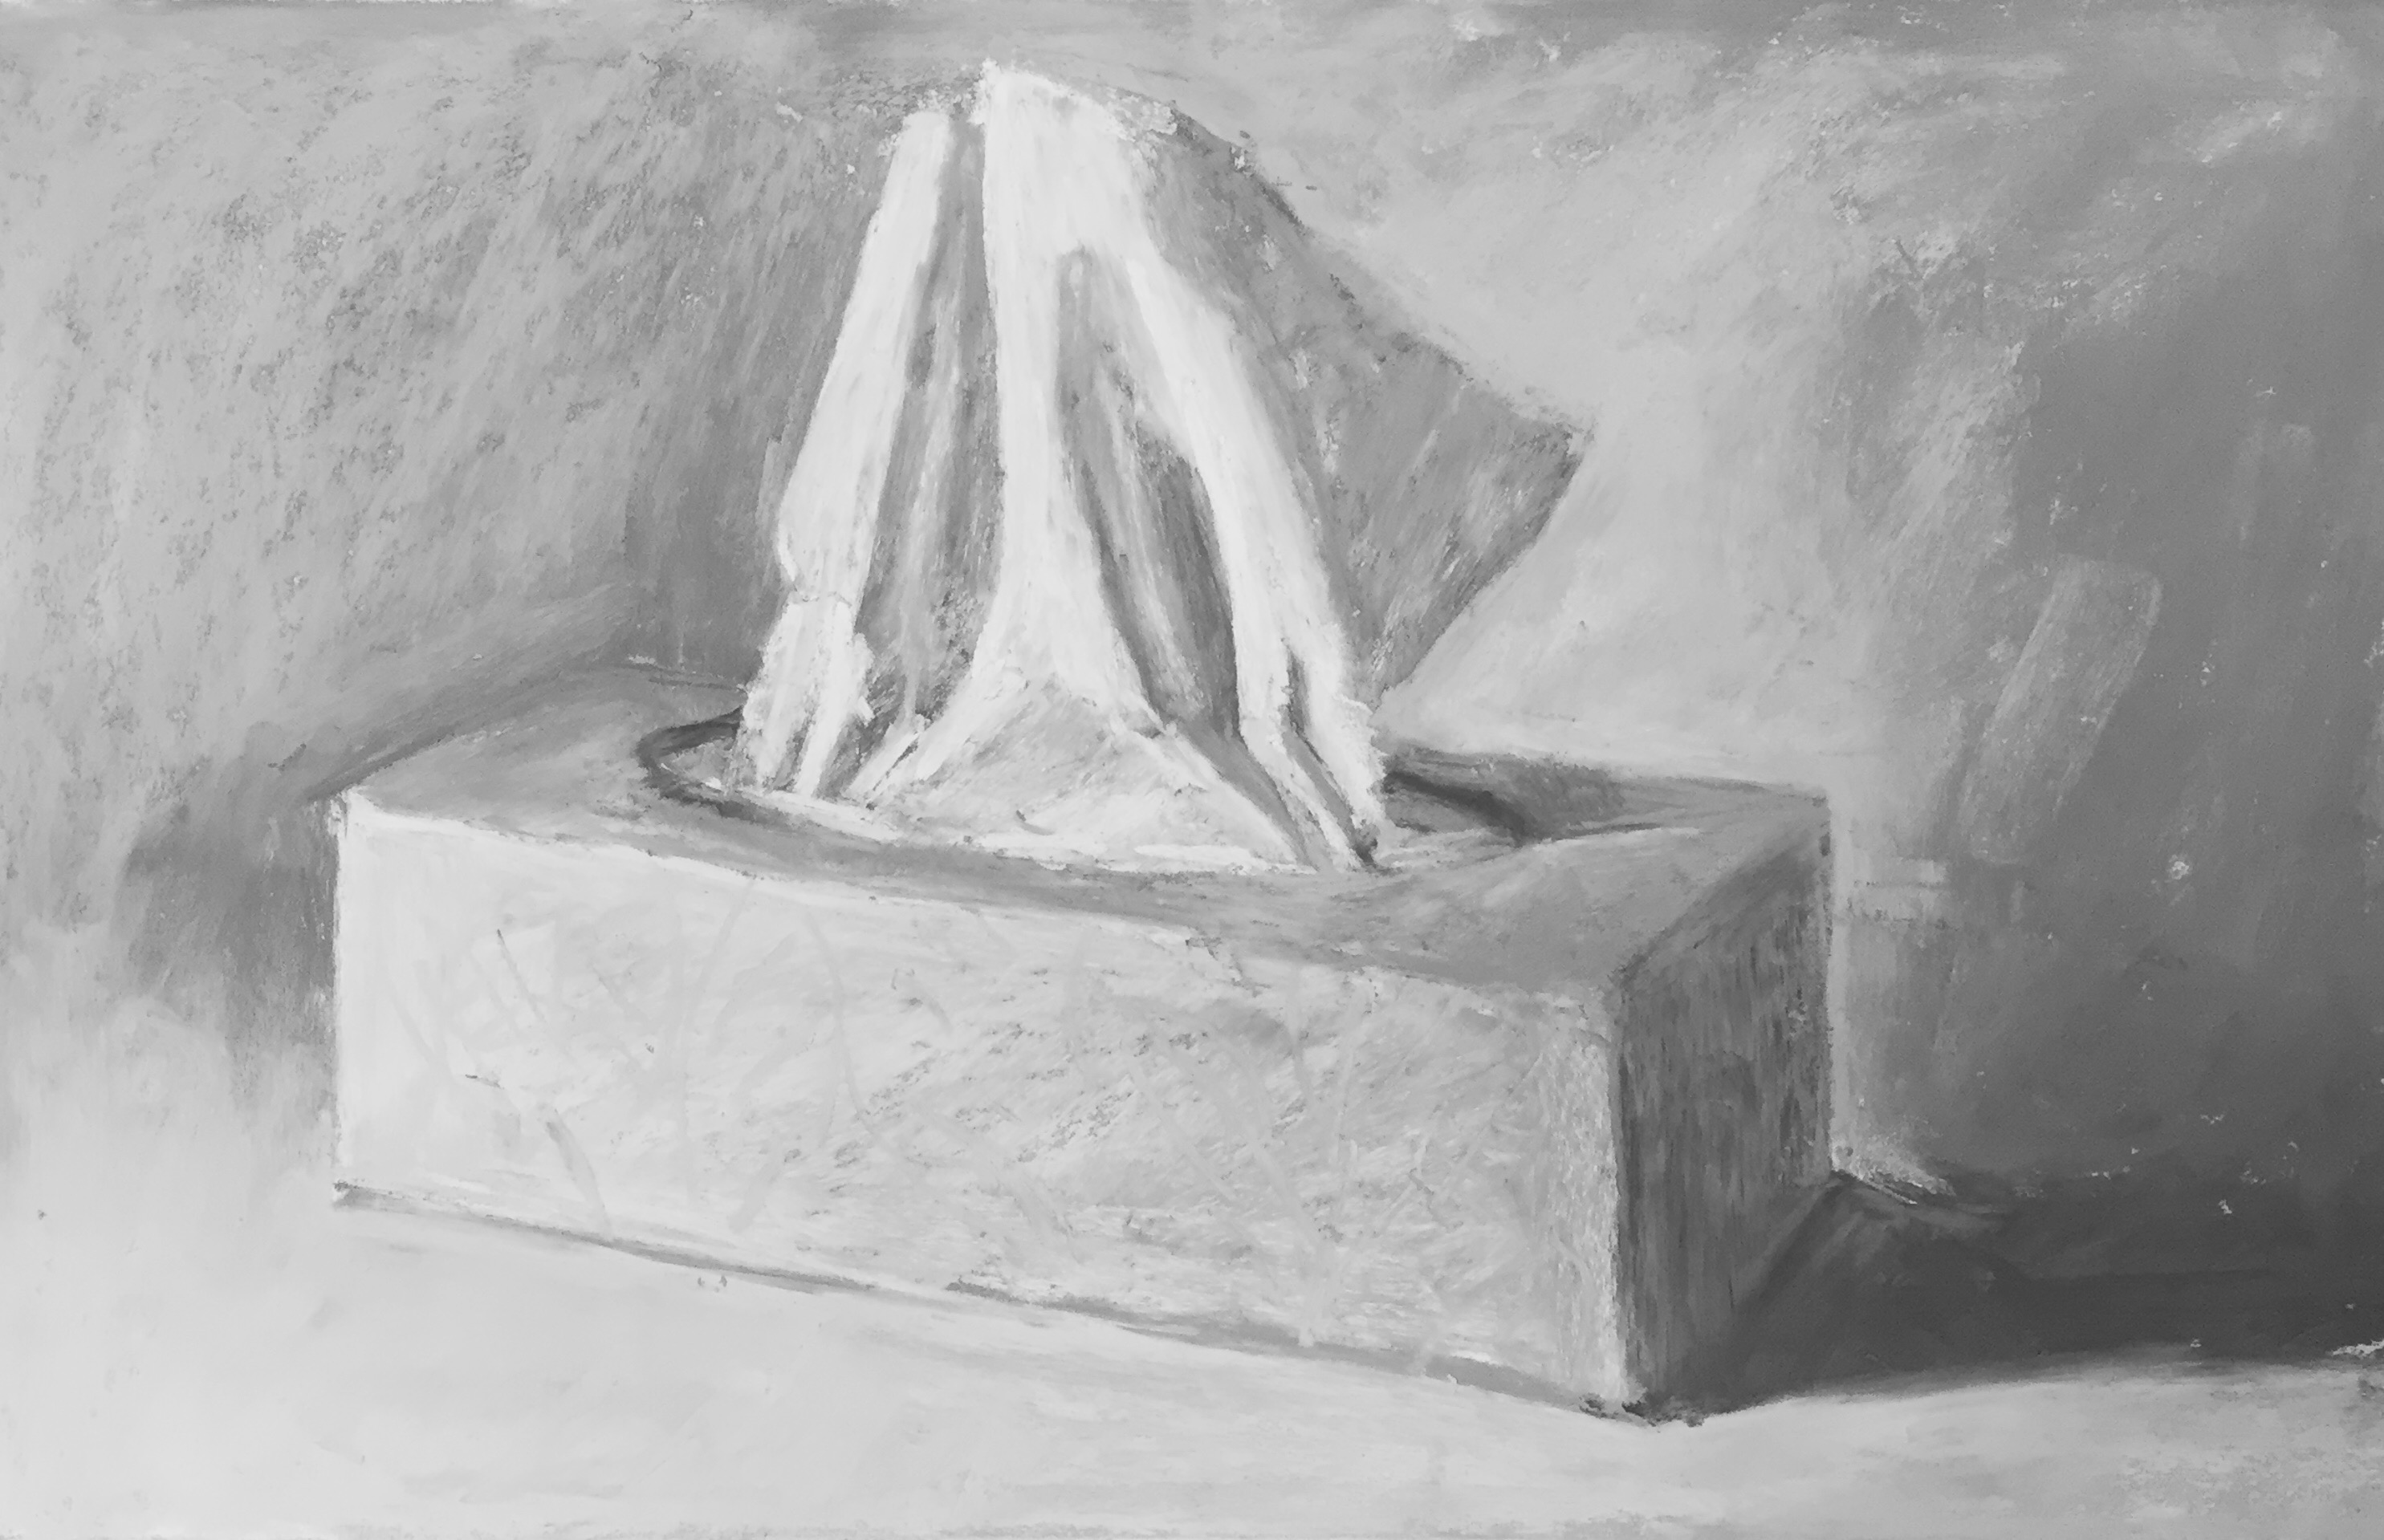 Lack of colour choices: 6b. The black and white version. Gail Sibley, 'Box of Tissues,' Unison pastels on UART 400 paper, 7 3/4 x 12 in.